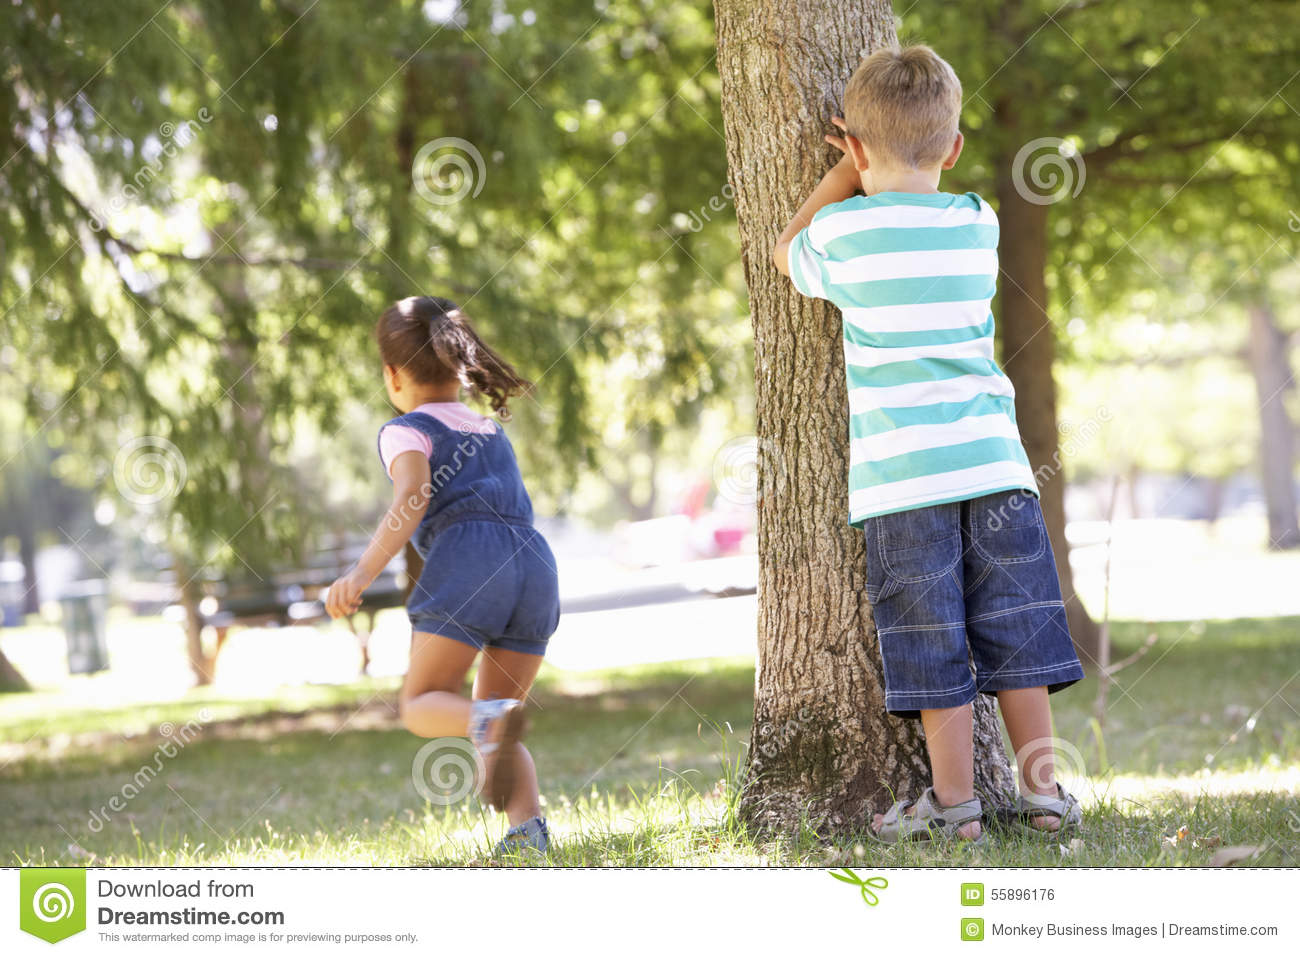 Hide And Seek Kids Two Children Playing Hide And Seek In Park Stock Photo Image Of